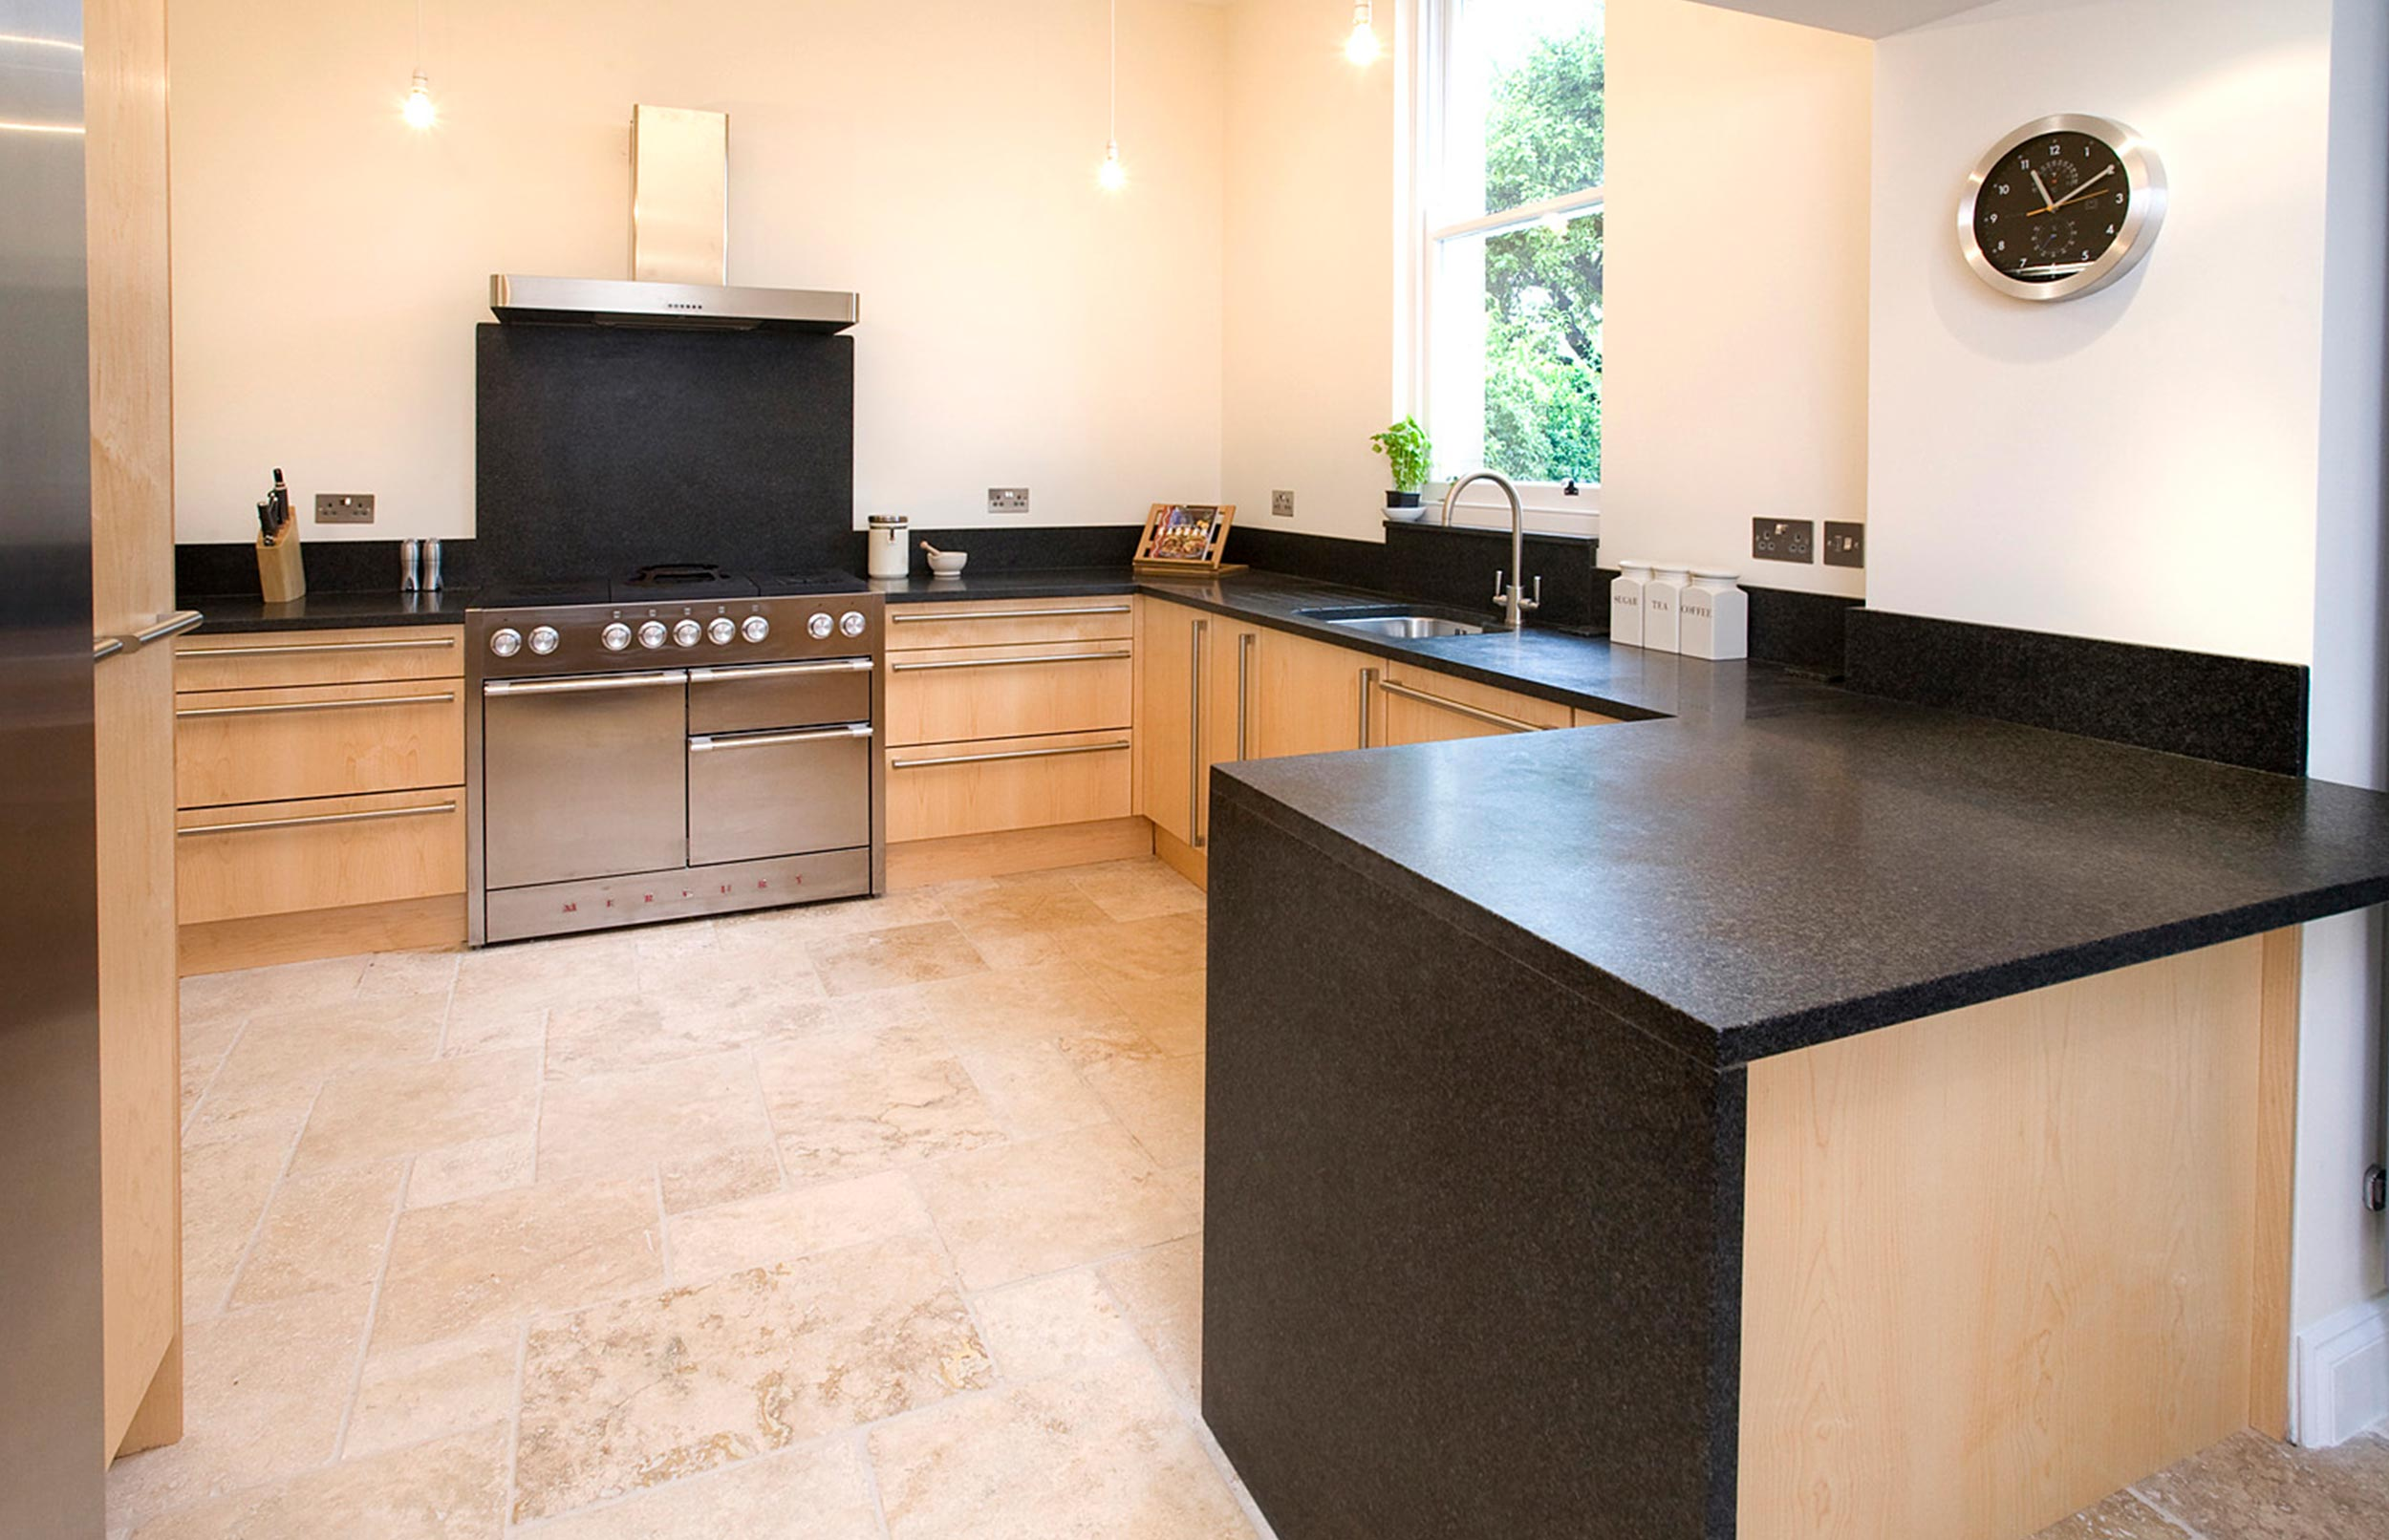 Contemporary City Bespoke Kitchen with Stone Floor